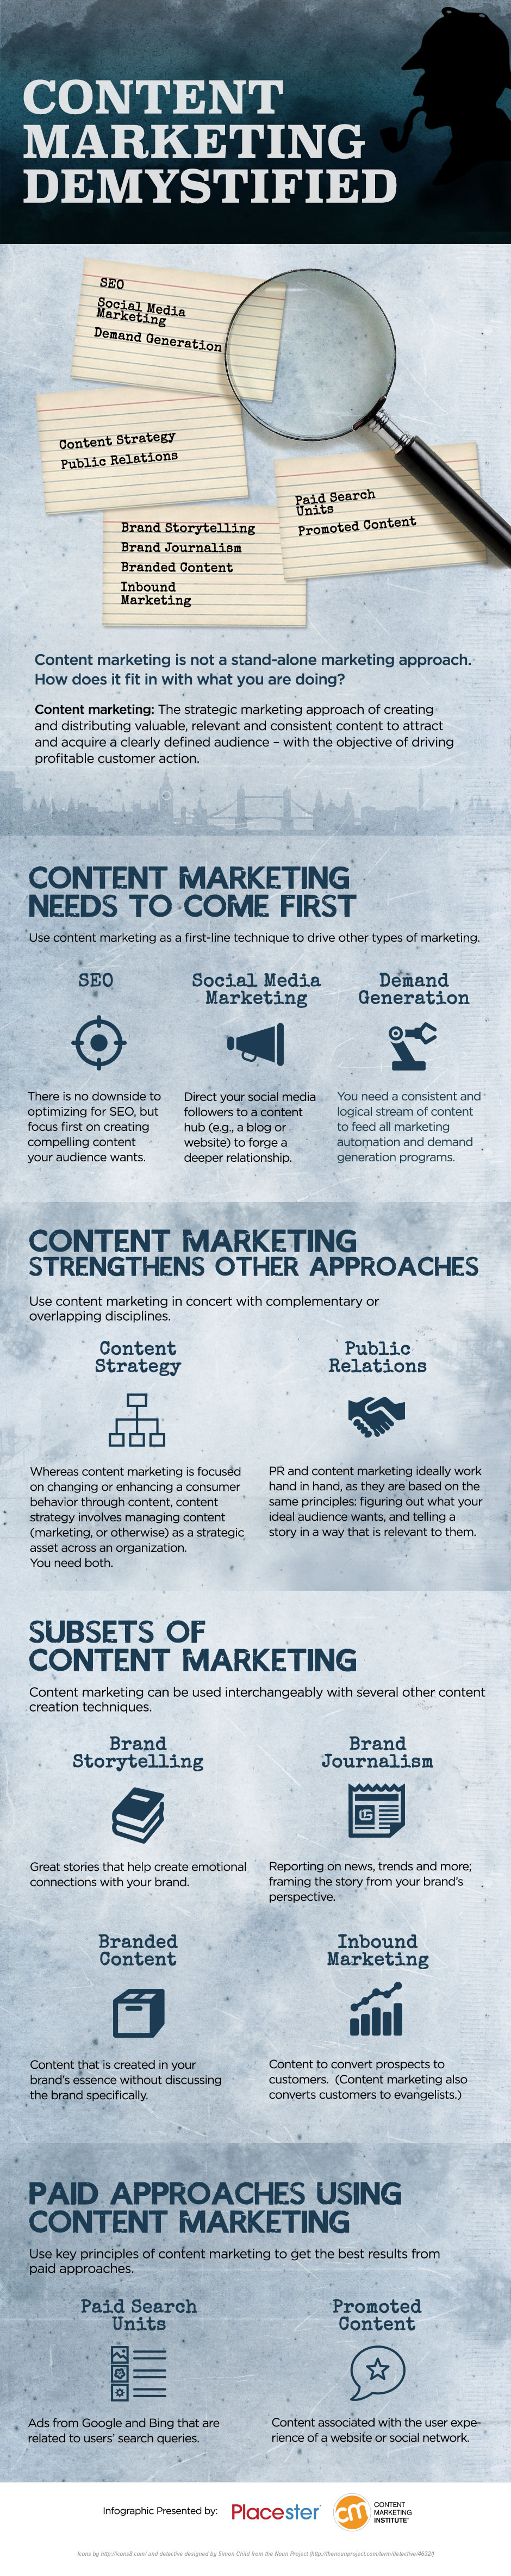 The Demystification of Content Marketing: A Field Guide [Infographic]